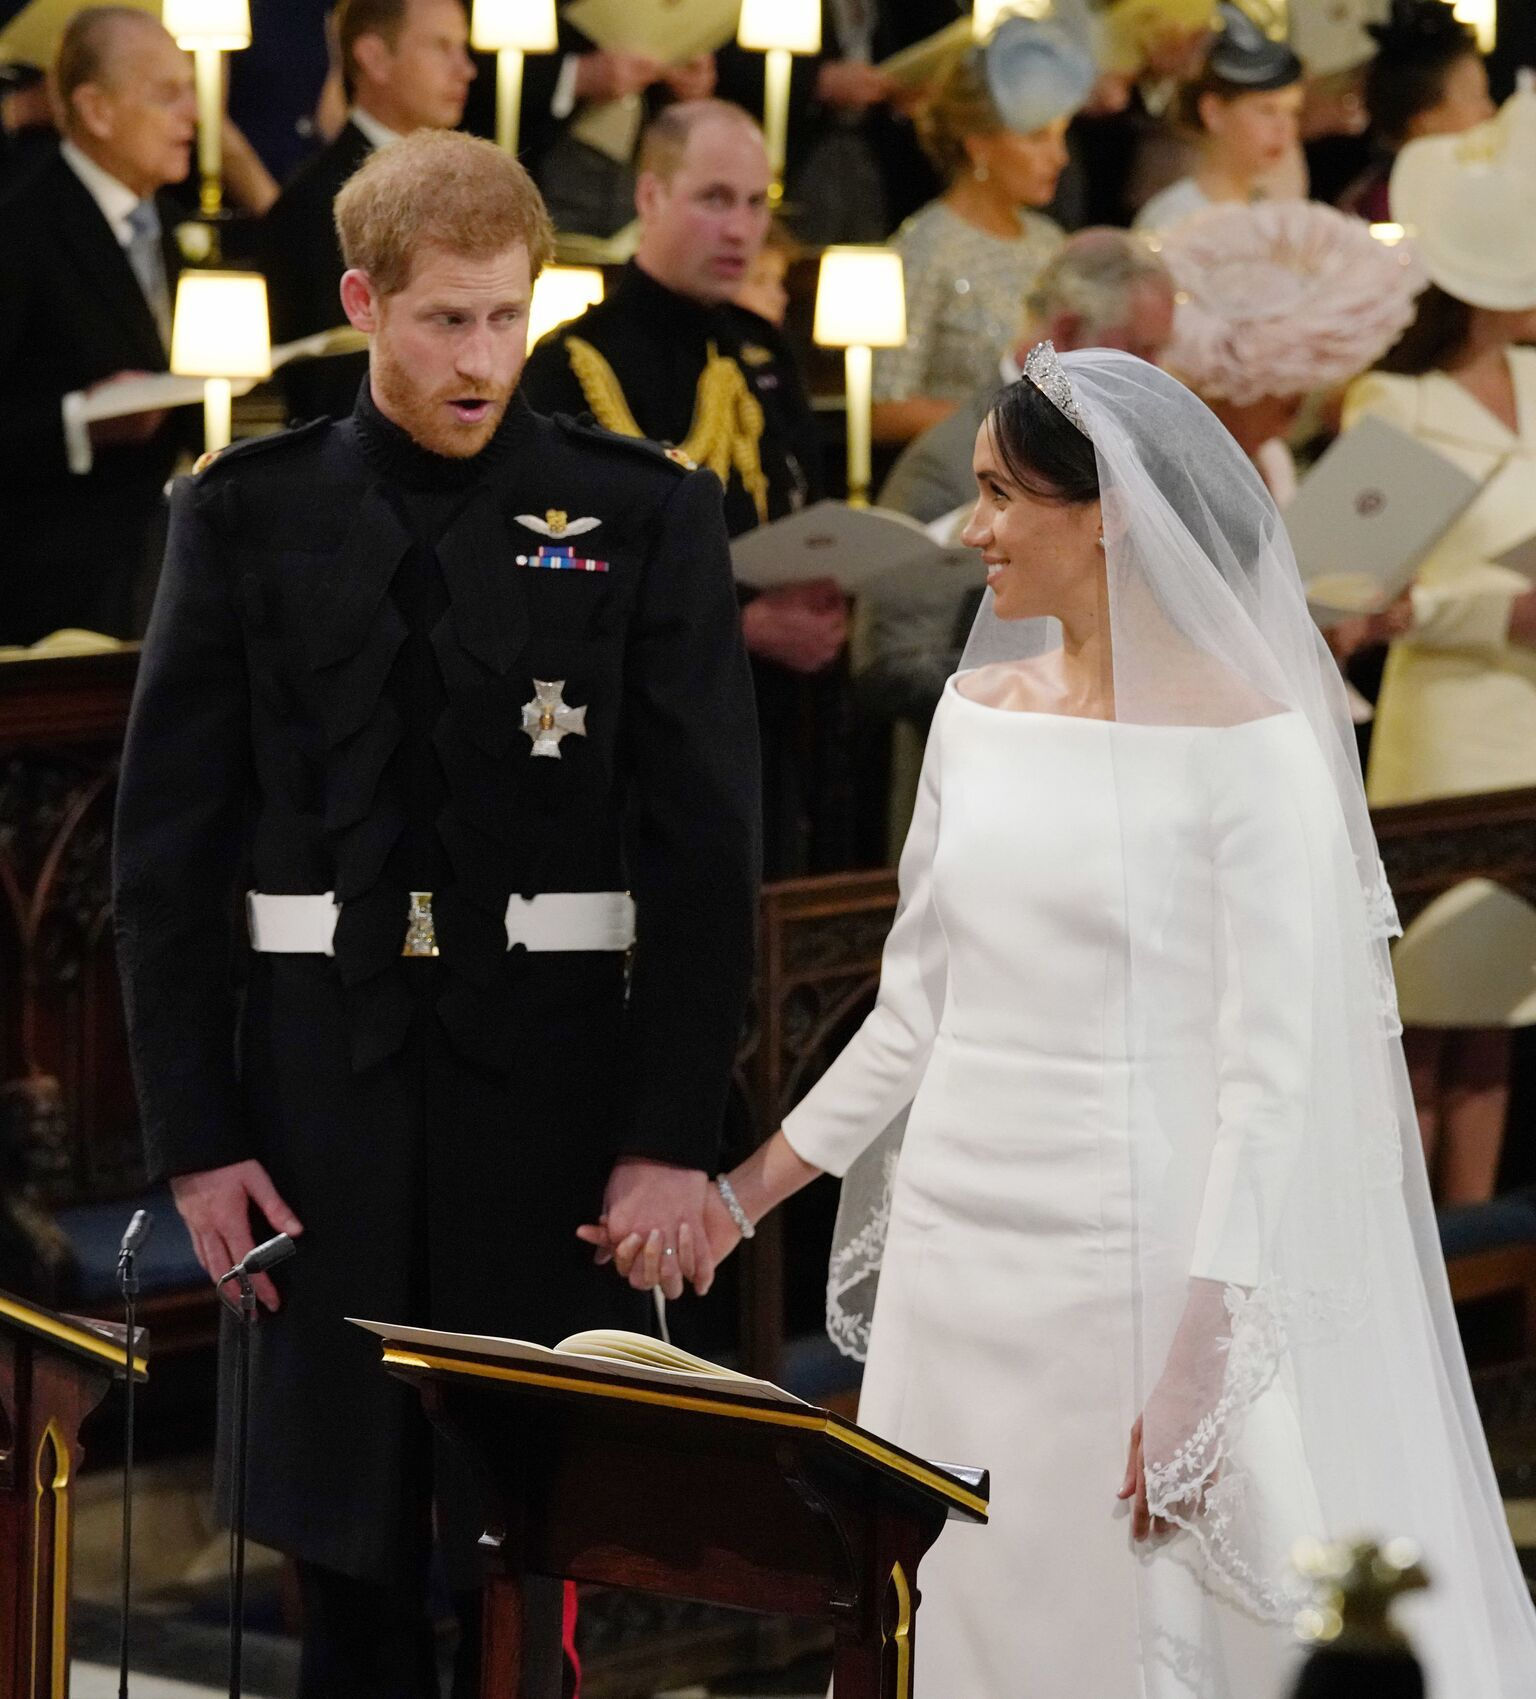 Prince Harry stands with his bride, Meghan Markle, during their wedding in St George's Chapel at Windsor Castle  | Getty Images / Global Images Ukraine